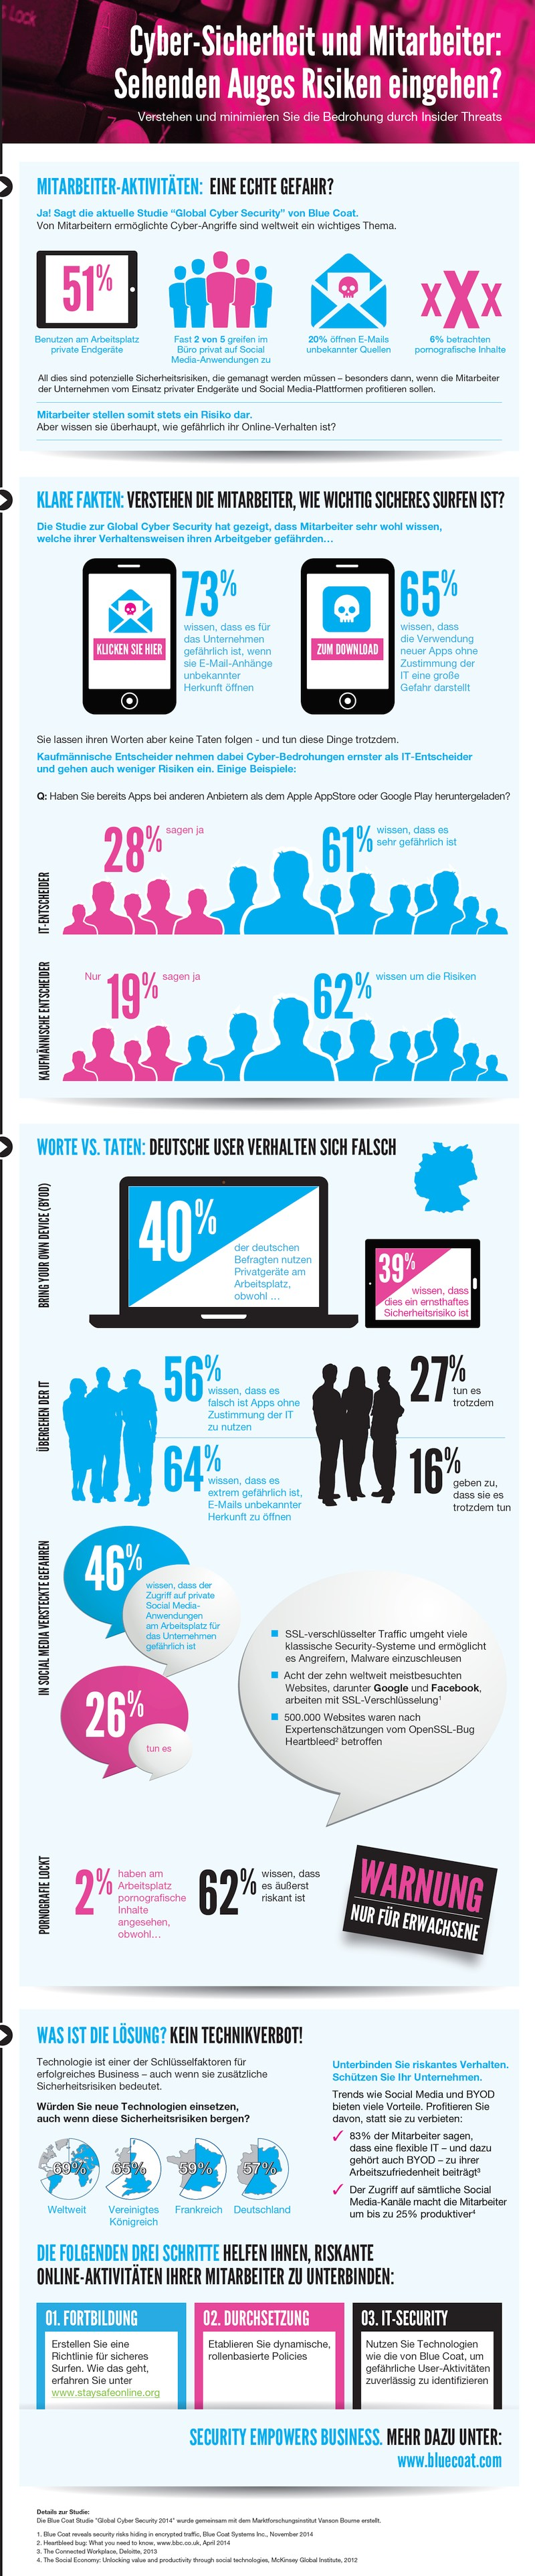 infografik blue coat cybersicherheit